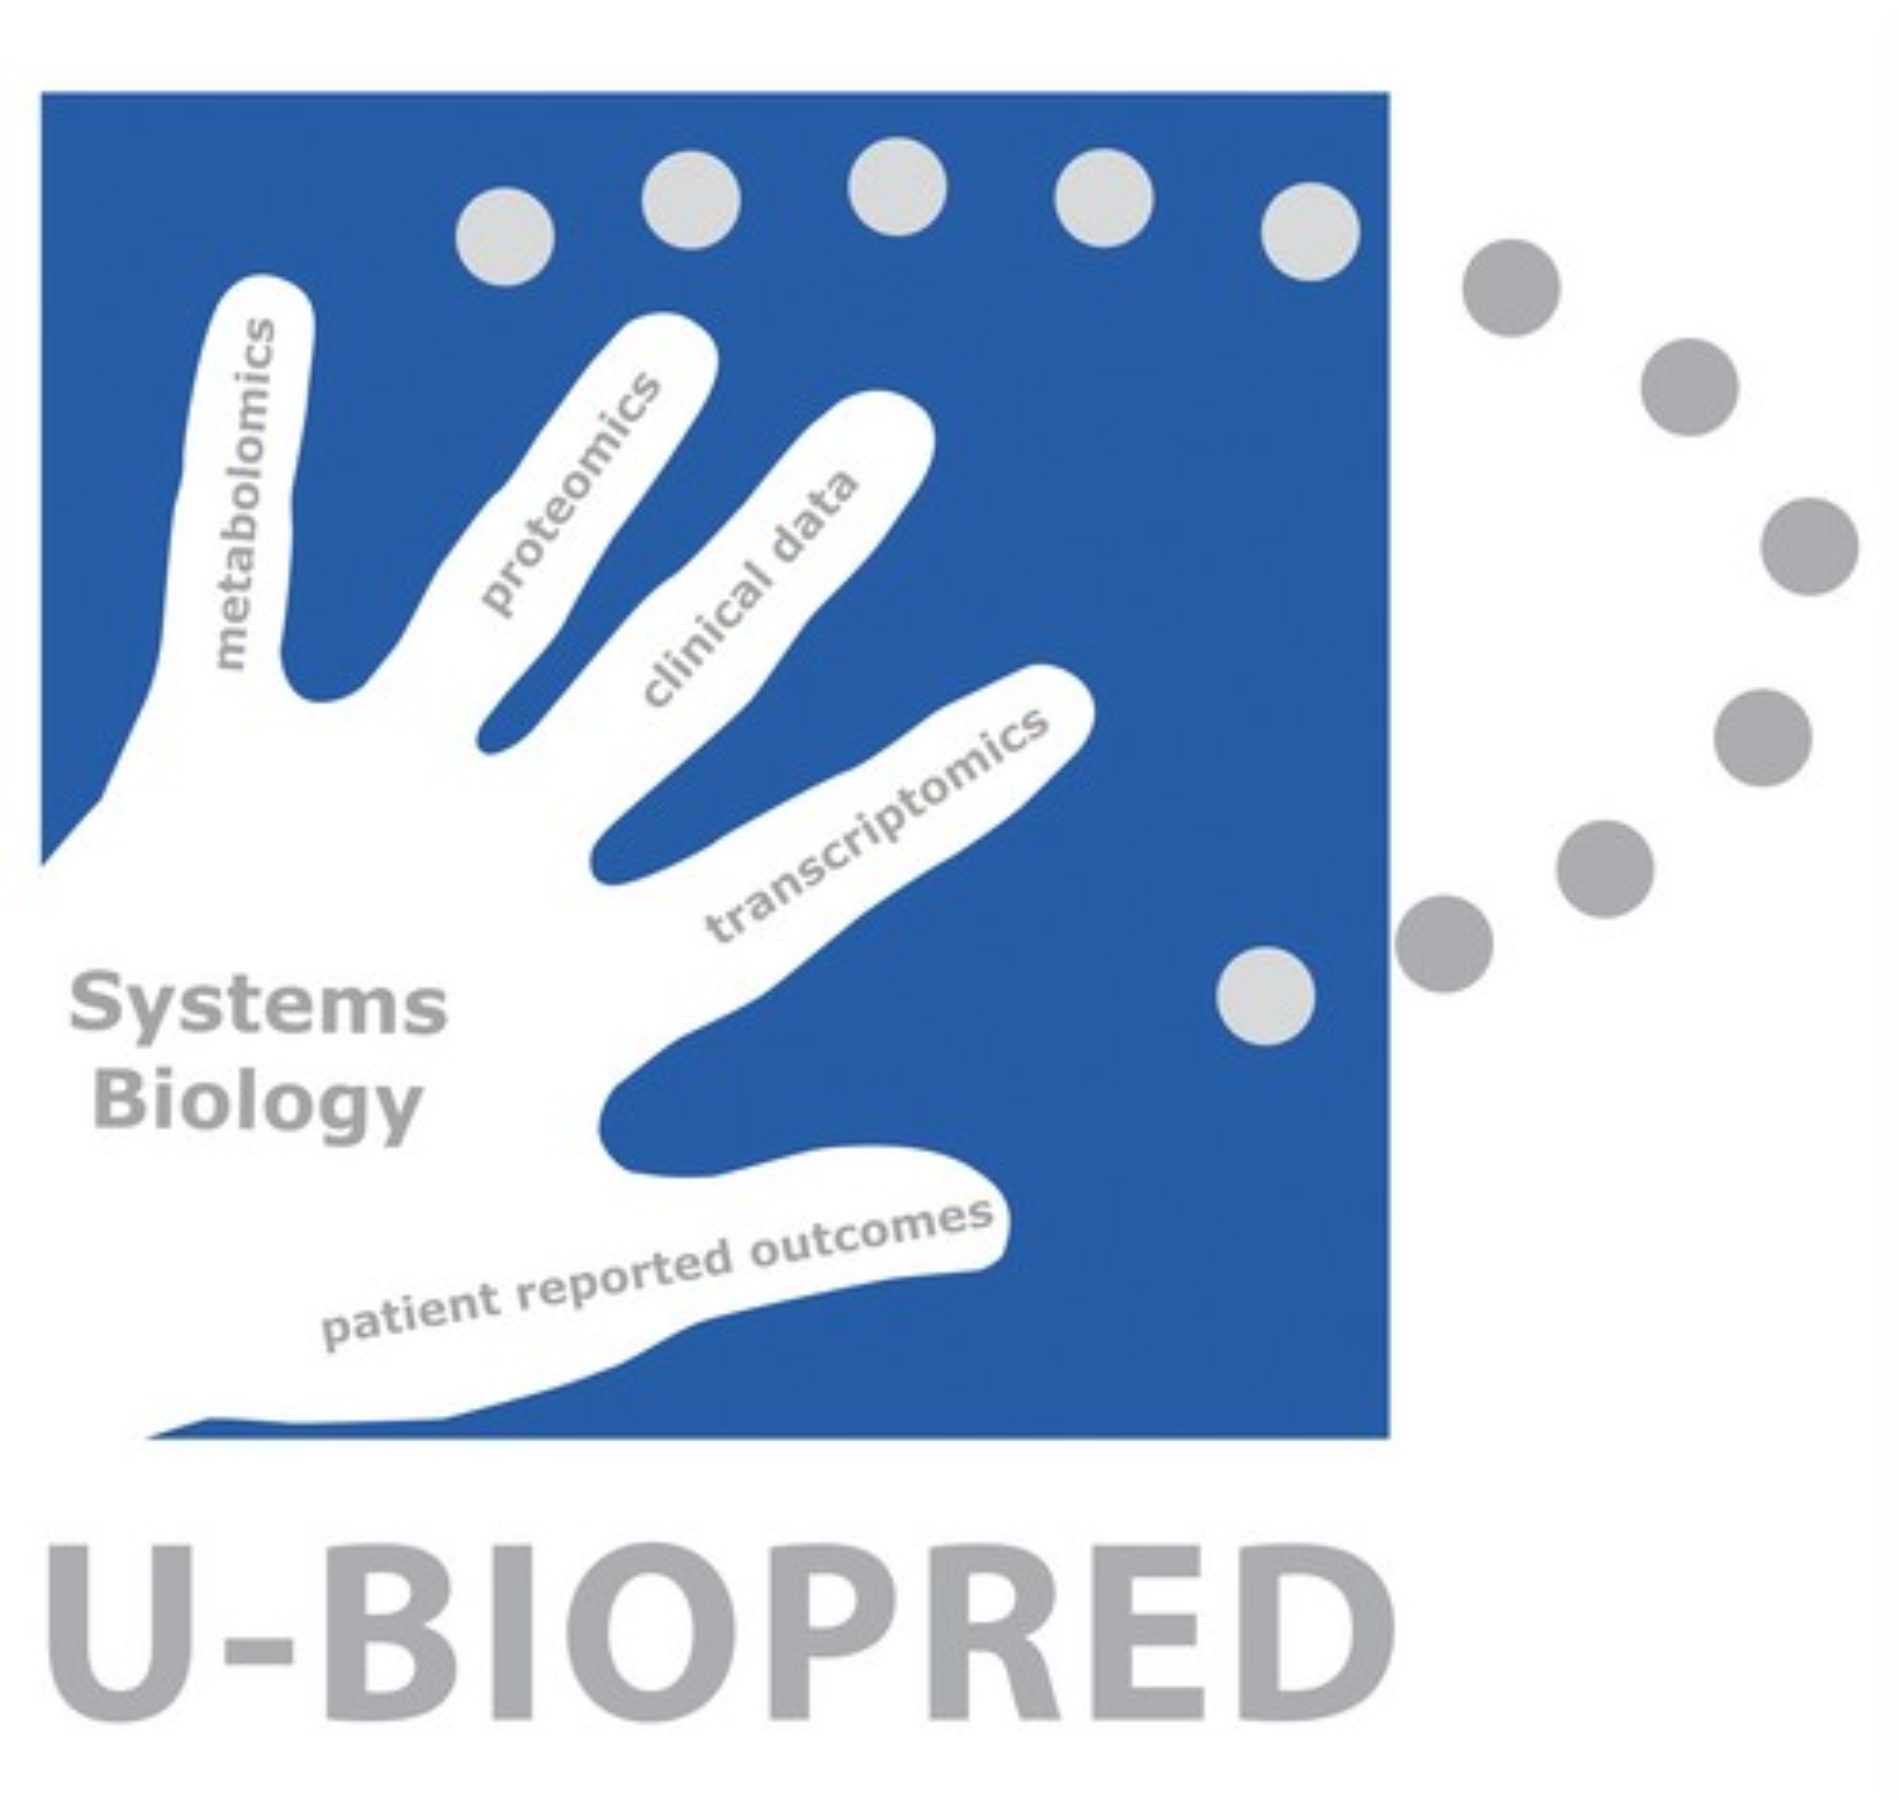 U-BIOPRED vince il premio Bio-IT World Best Practice Award